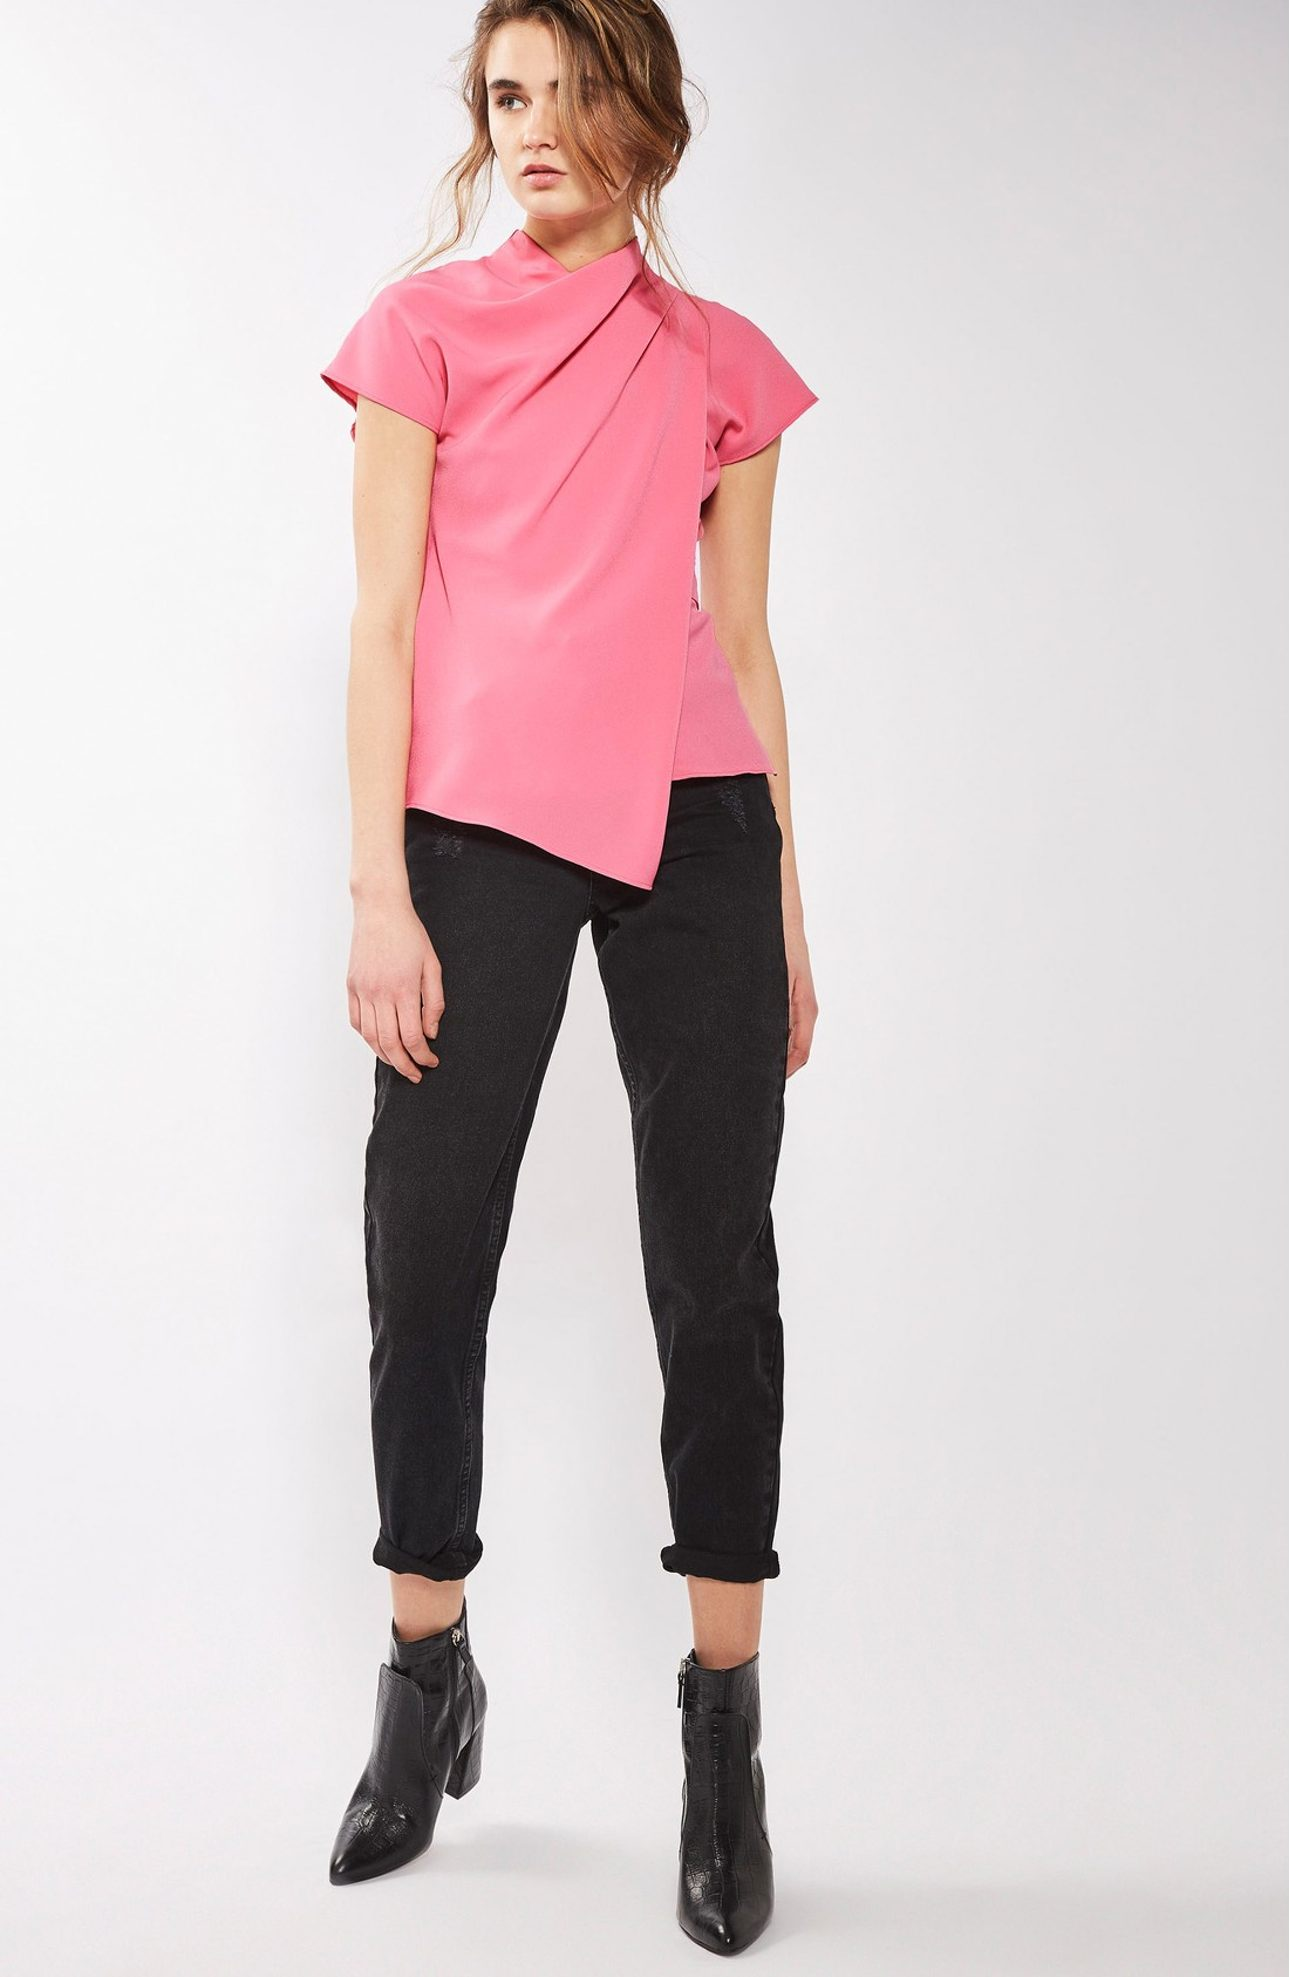 Origami Top - $68.00 (Image: Nordstrom)